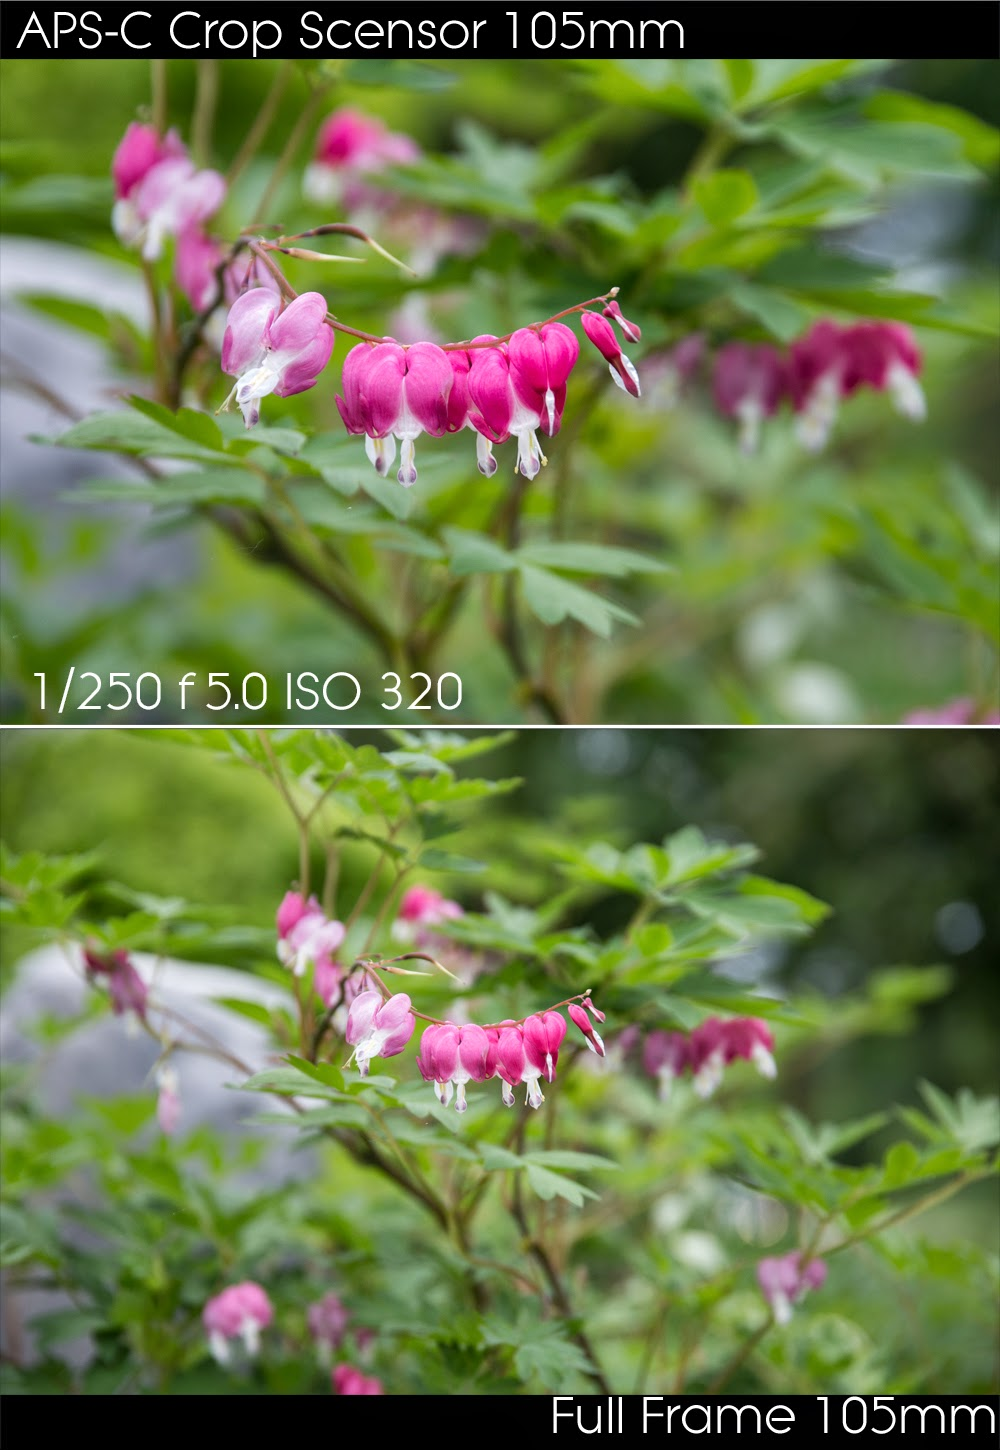 ihpoc Photography - In Hot Pursuit of Color: Full Frame vs. Crop ...